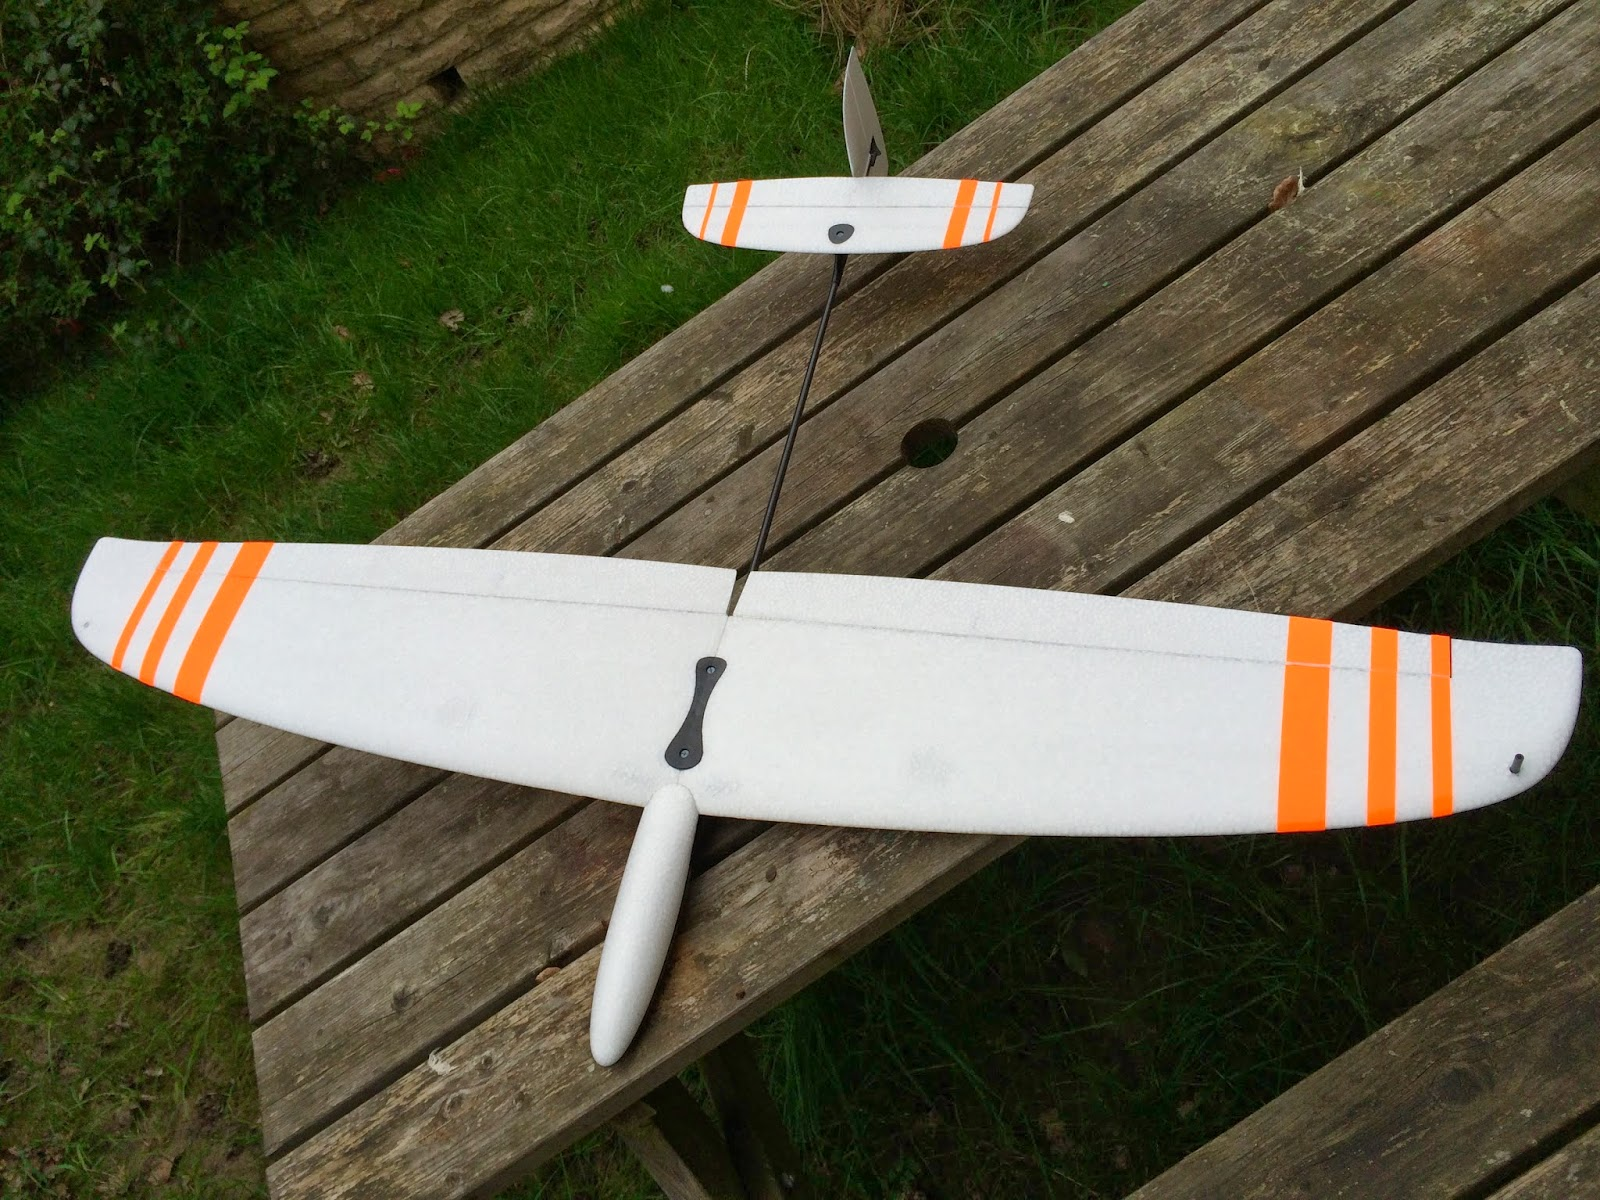 Slope Soaring Sussex: March 2014